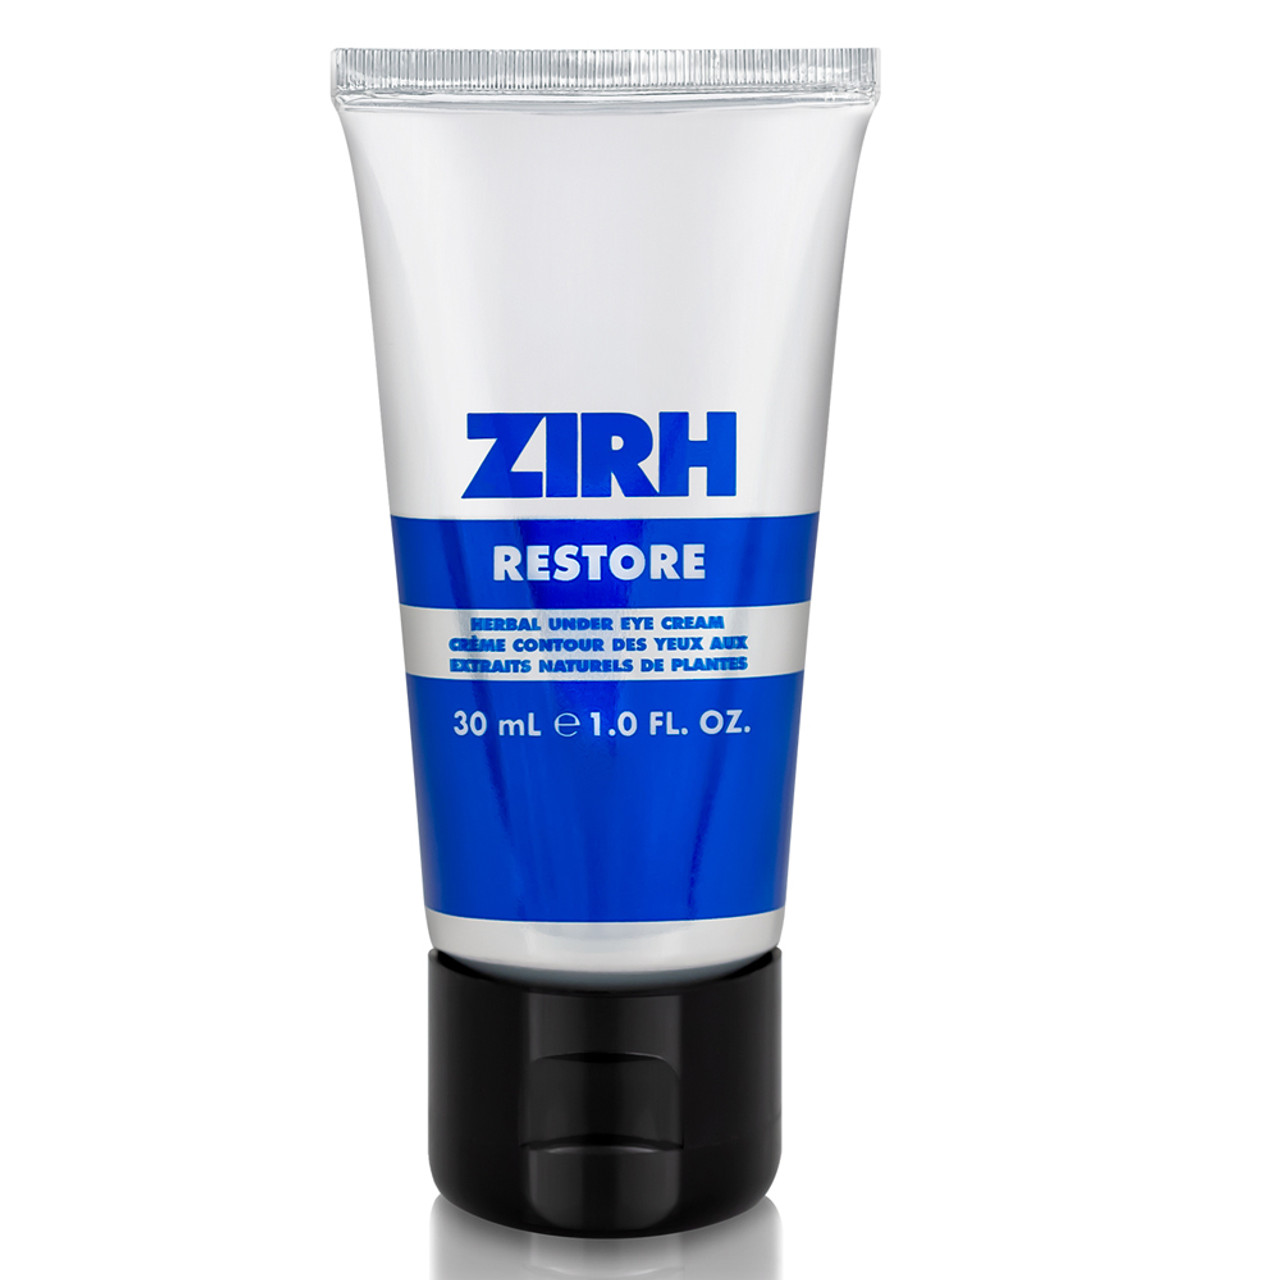 ZIRH Restore Herbal Under Eye Cream